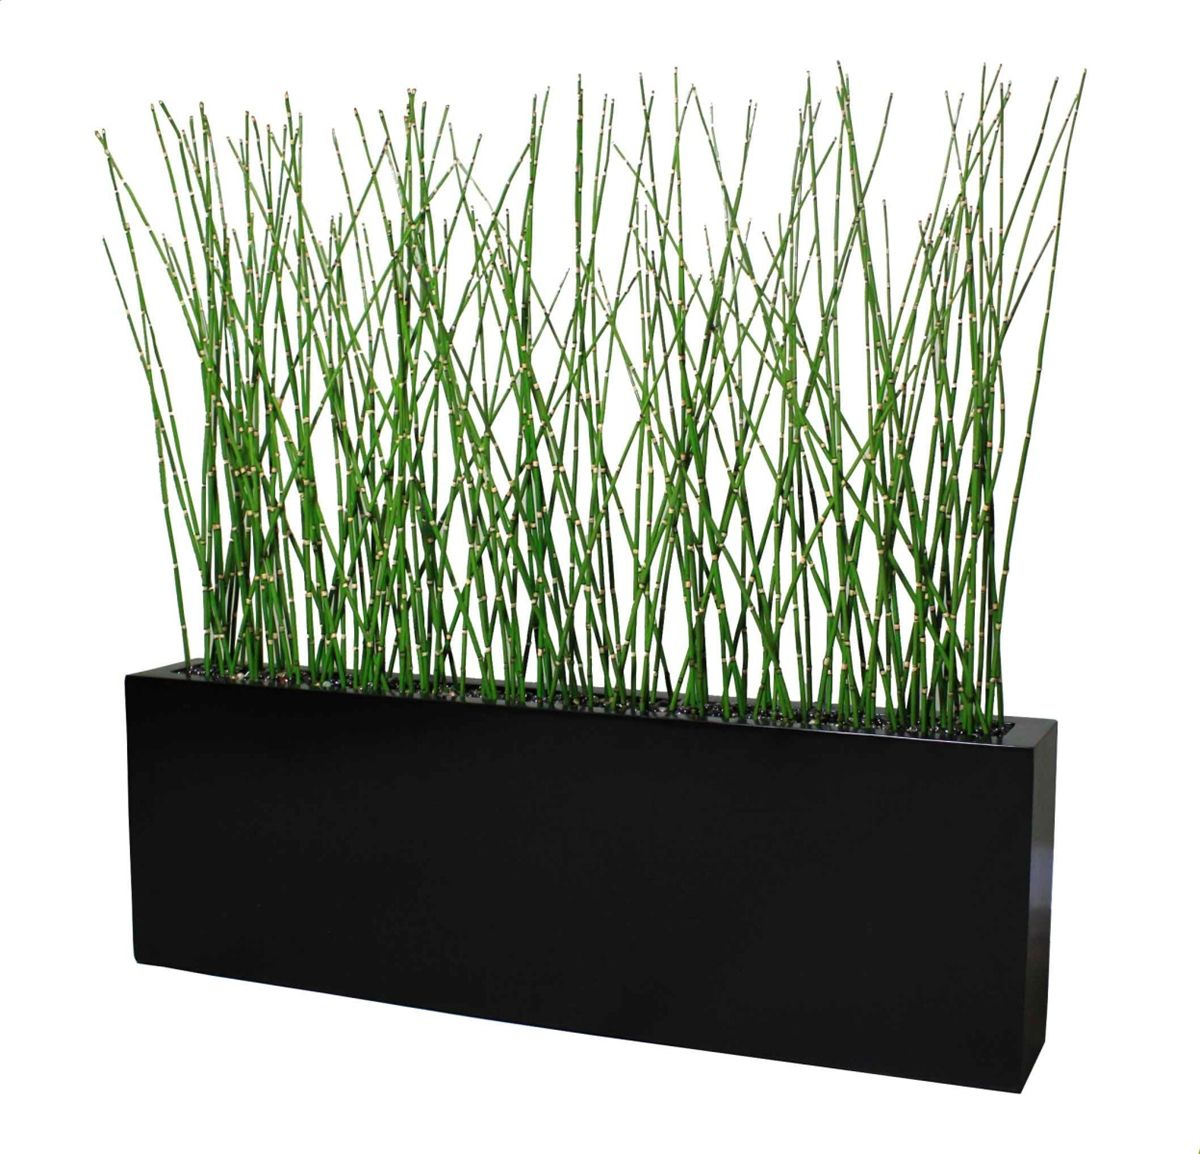 Contemporary planter box fiberglass 54 l x 8 w x 18 h Tall narrow indoor plants